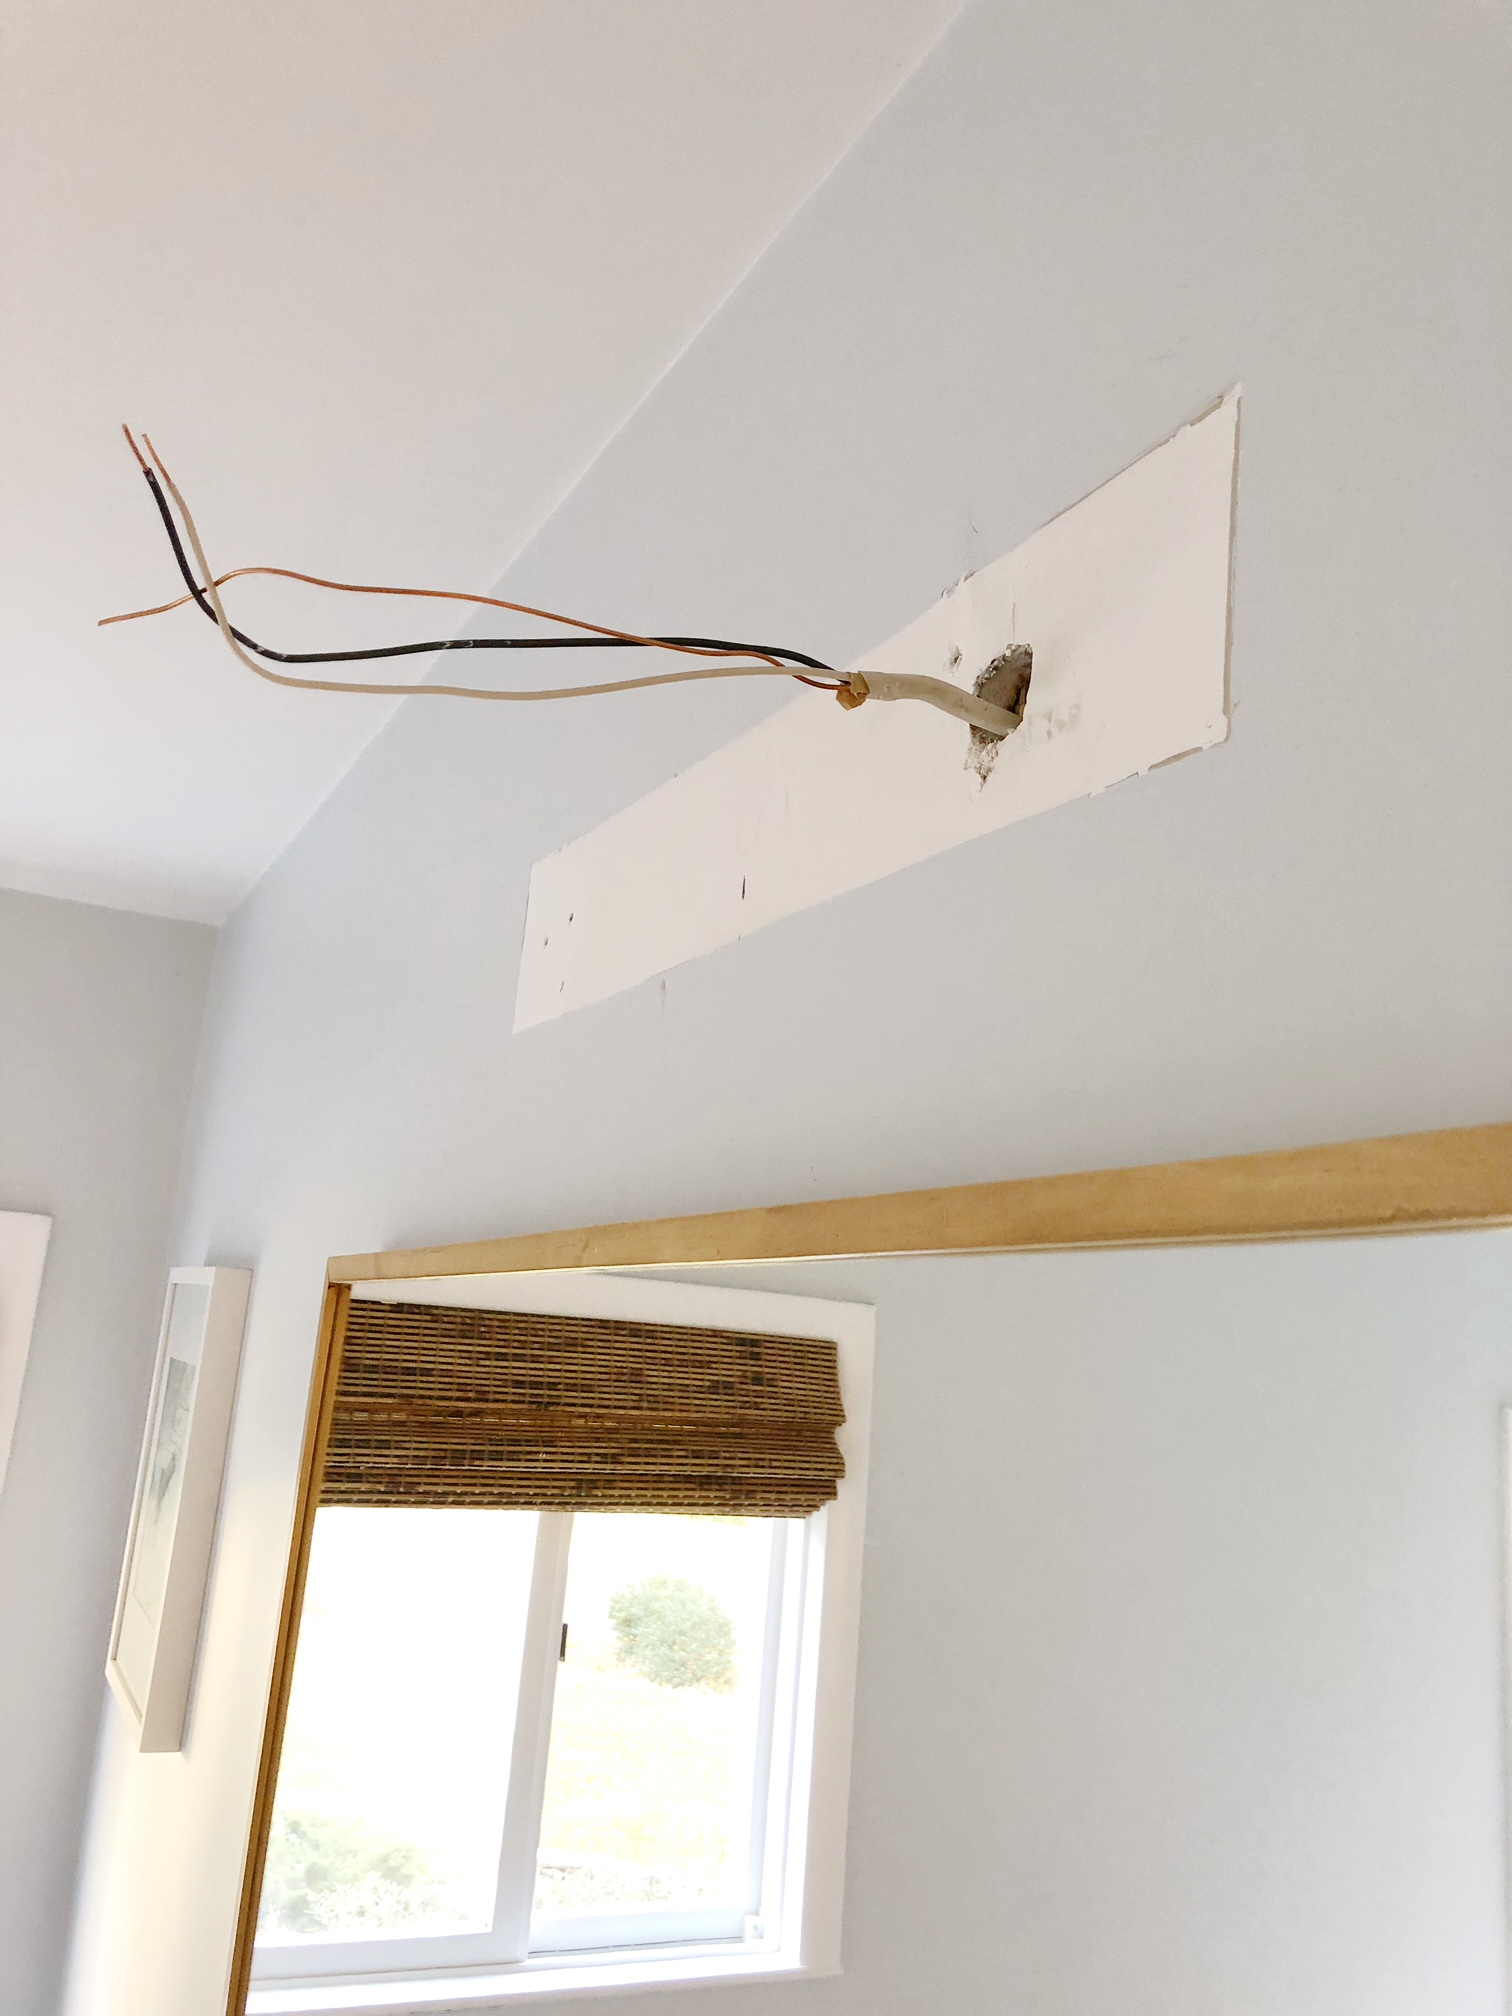 Gray Oak Studio - 2 Days 200 Dollars Challenge - Bathroom Vanity Light Fixture Update